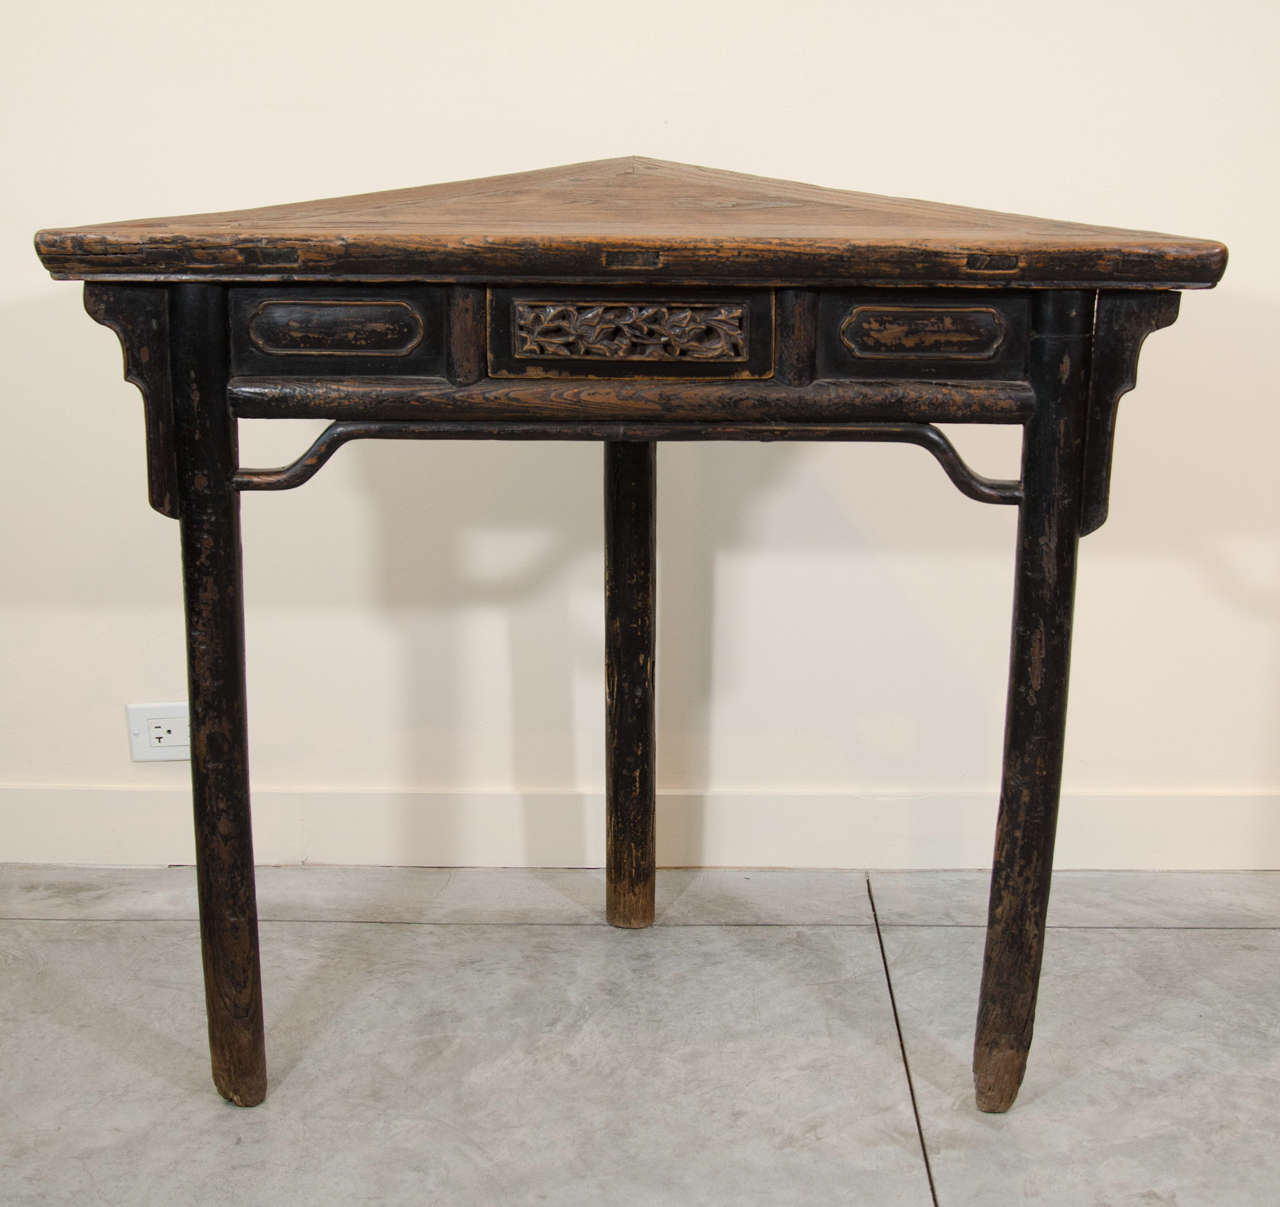 An Unusual Chinese Corner Table, Circa 1850, From Shanxi Province. With  Beautifully Carved